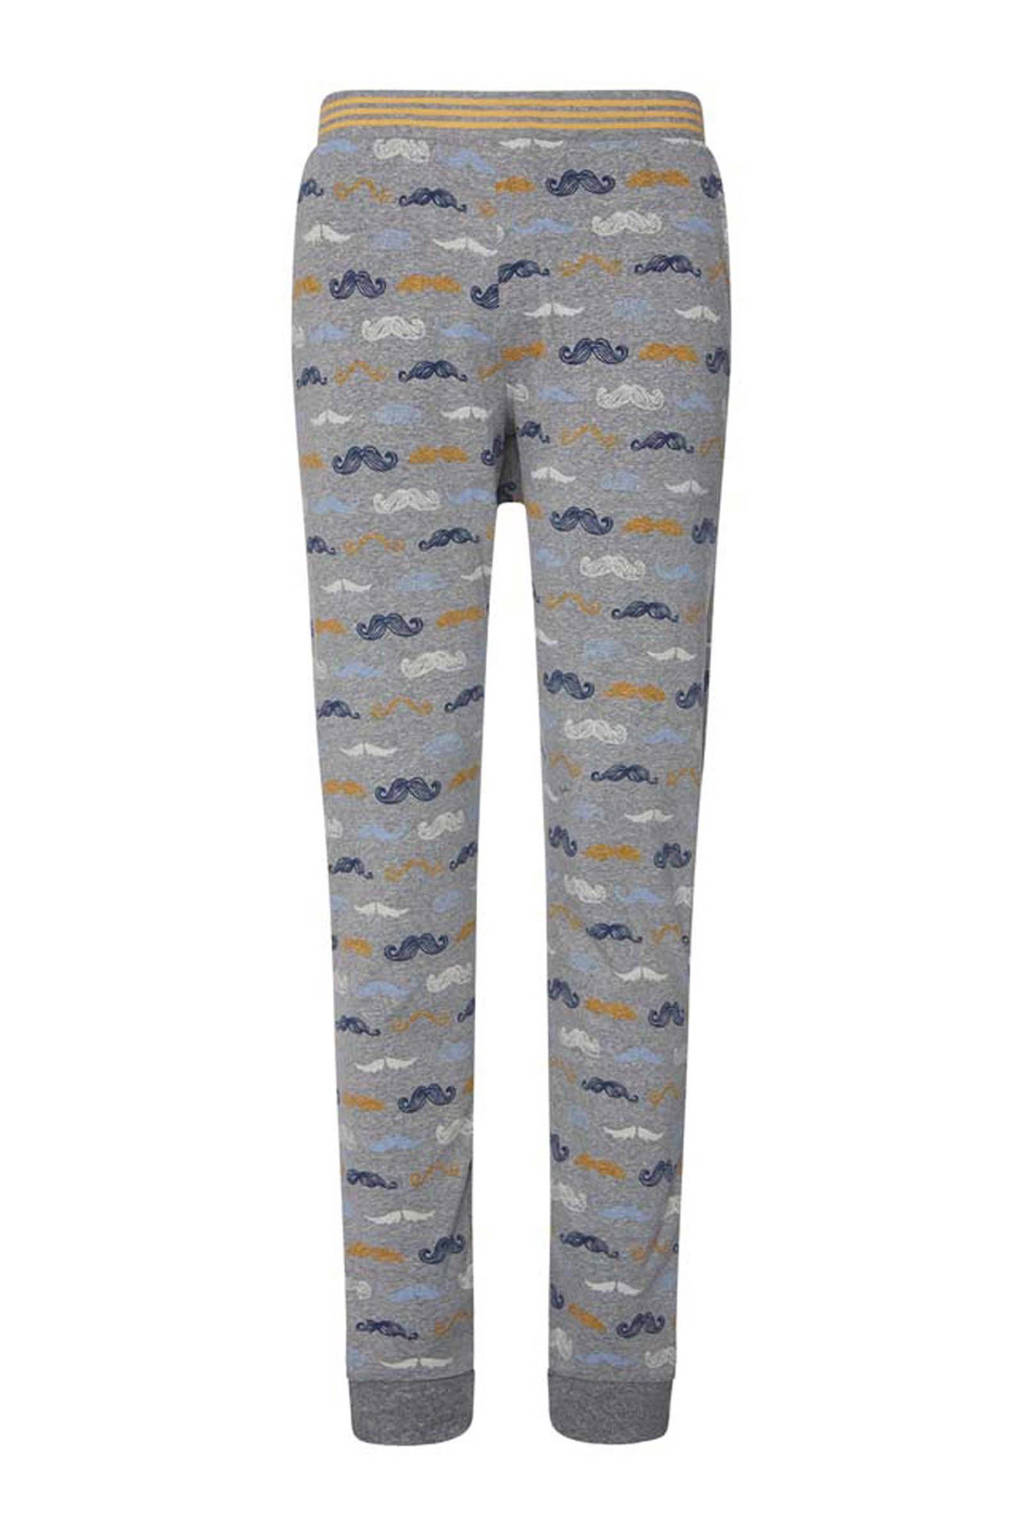 Charlie Choe pyjamabroek Monsieur met all over print grijs, Grijs/geel